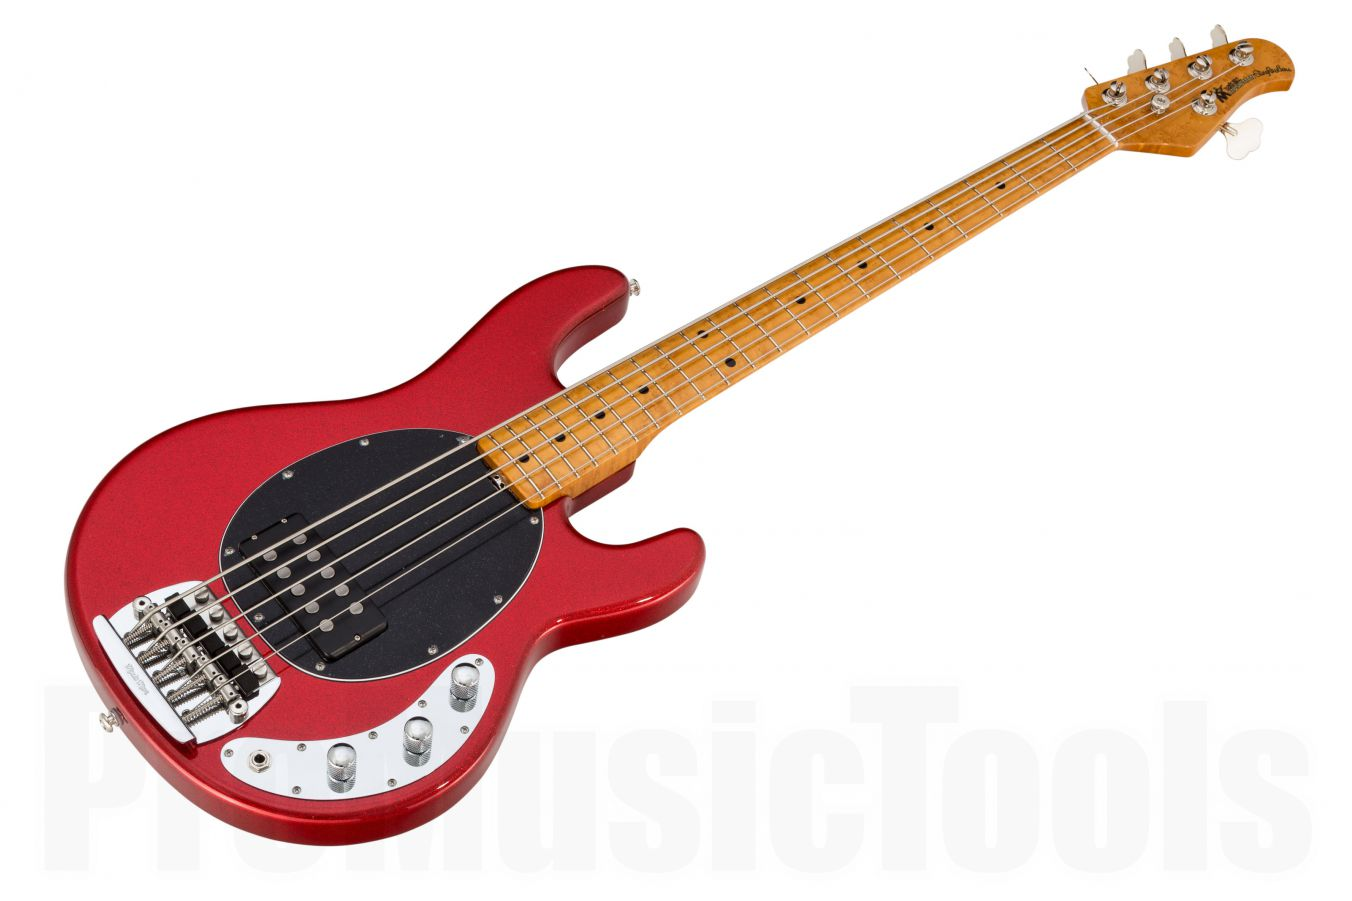 Music Man USA Classic Stingray 5 RS - PDN Cardinal Red Sparkle Limited Edition